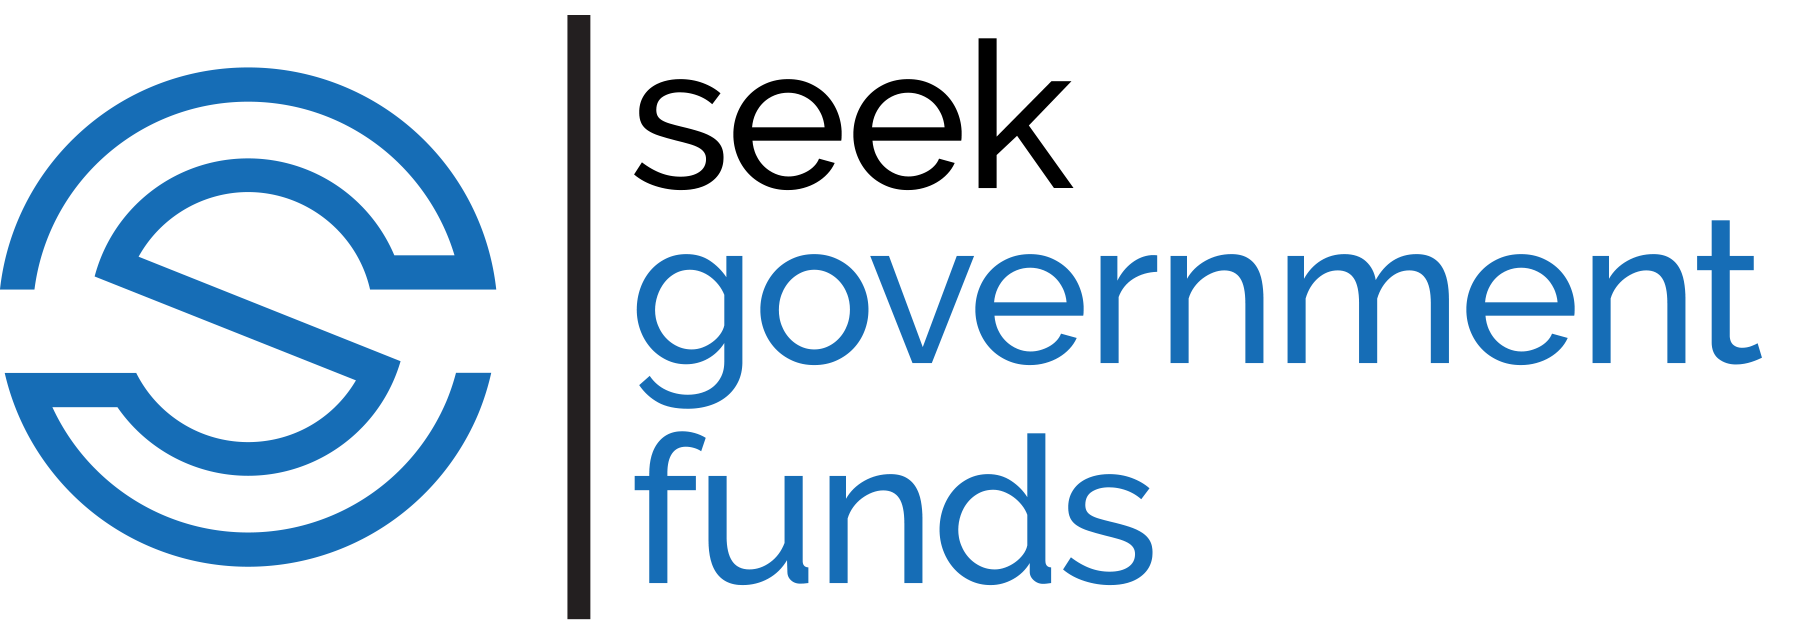 Seek Government Funds